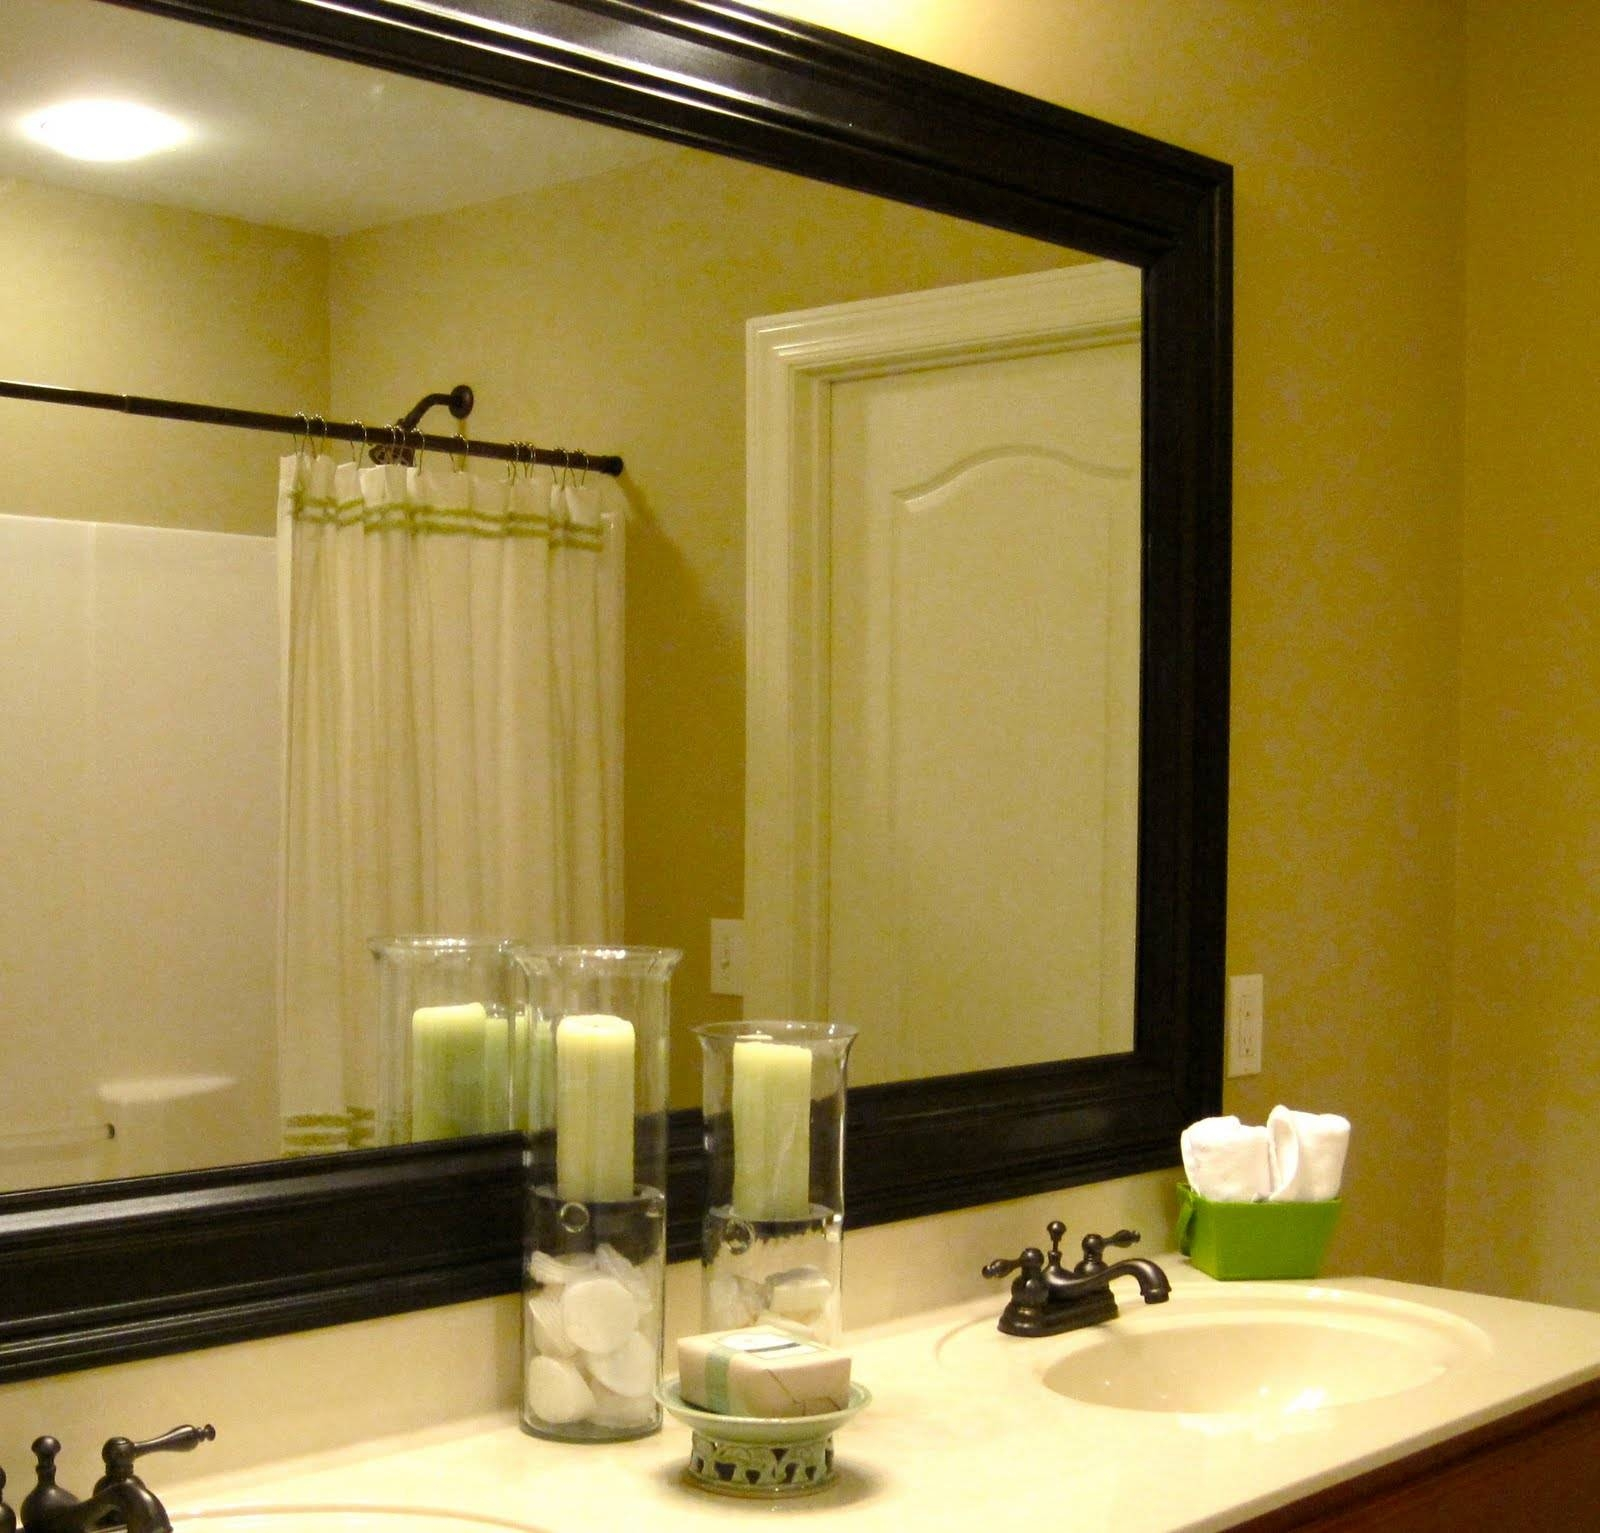 Frame Large Bathroom Mirror Magnificent Ideas Landscape Fresh At in Large Landscape Mirrors (Image 10 of 25)